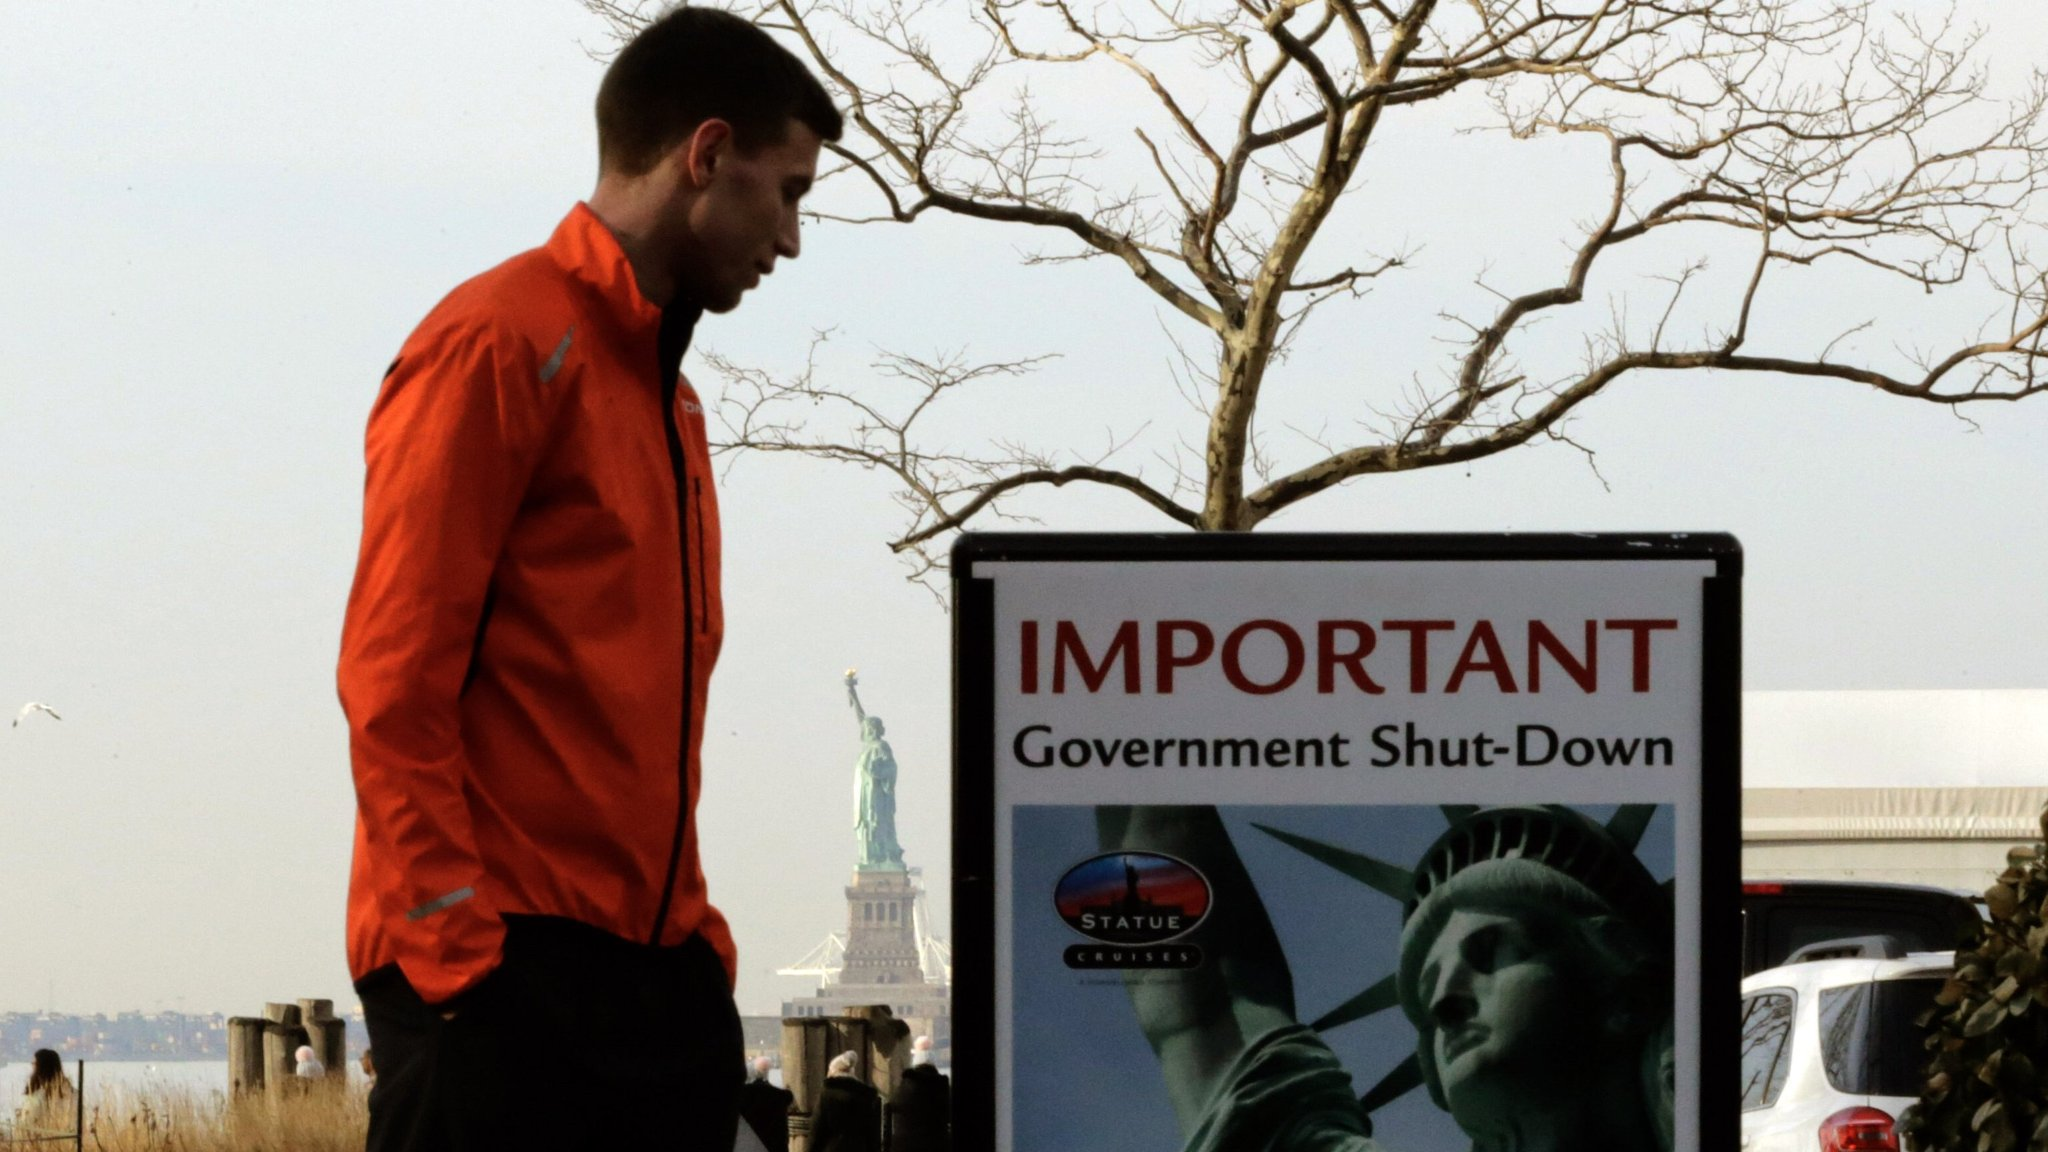 Left and right trade barbs as US shutdown stalemate drags on